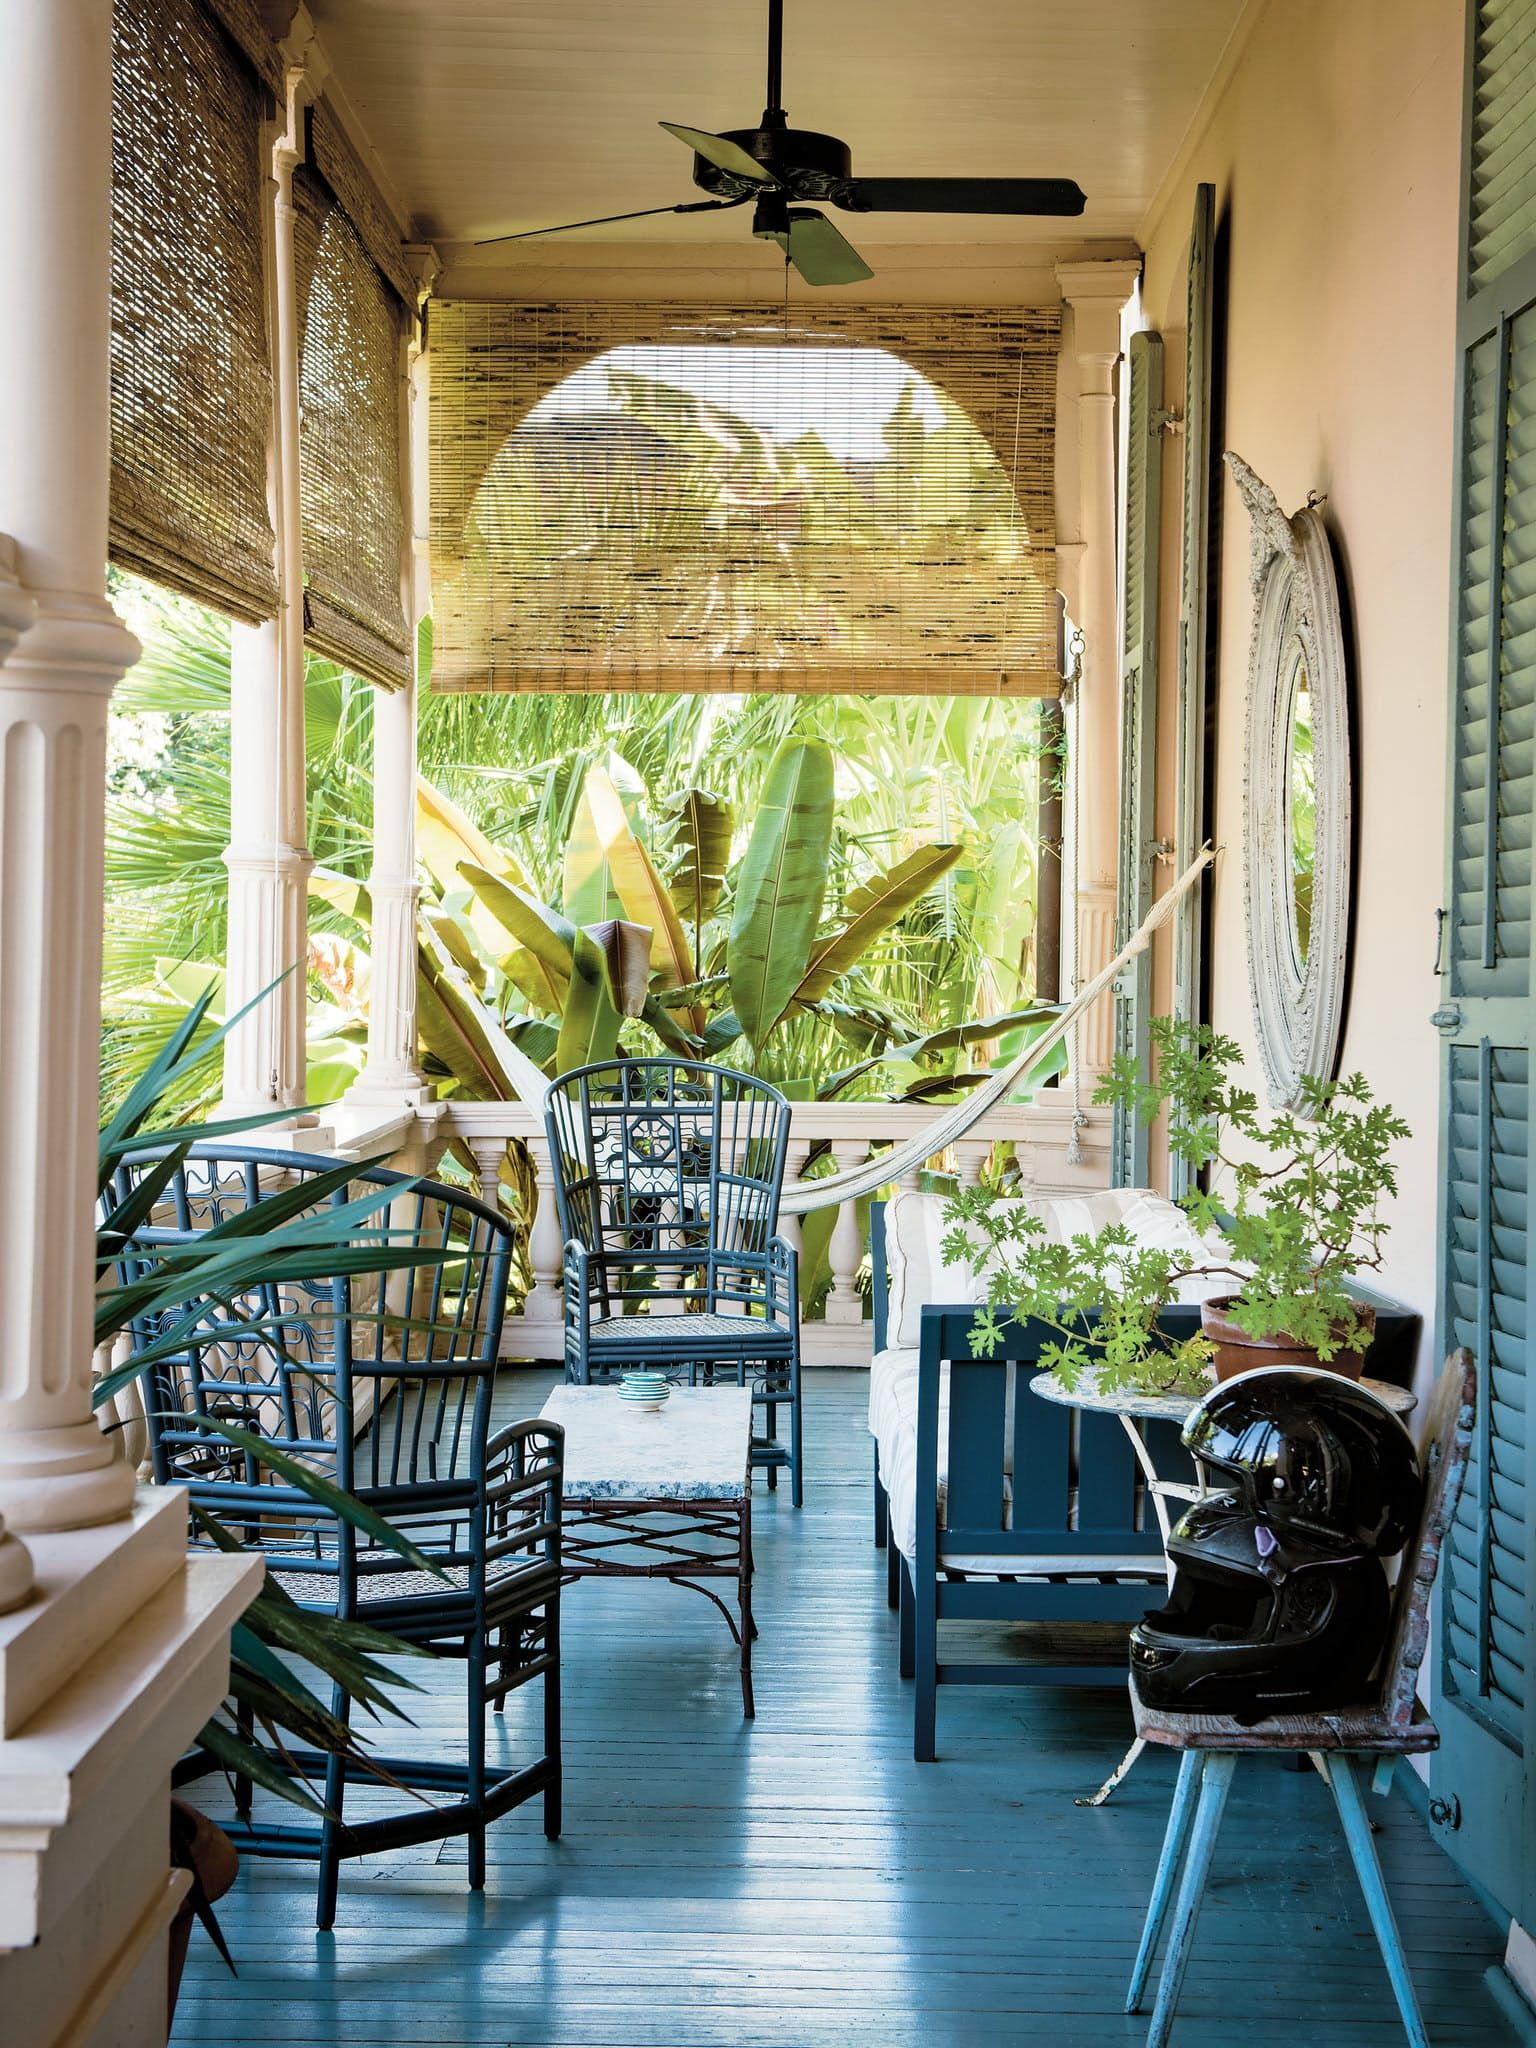 Take a Virtual Stroll Through 5 Beautiful New Orleans Homes